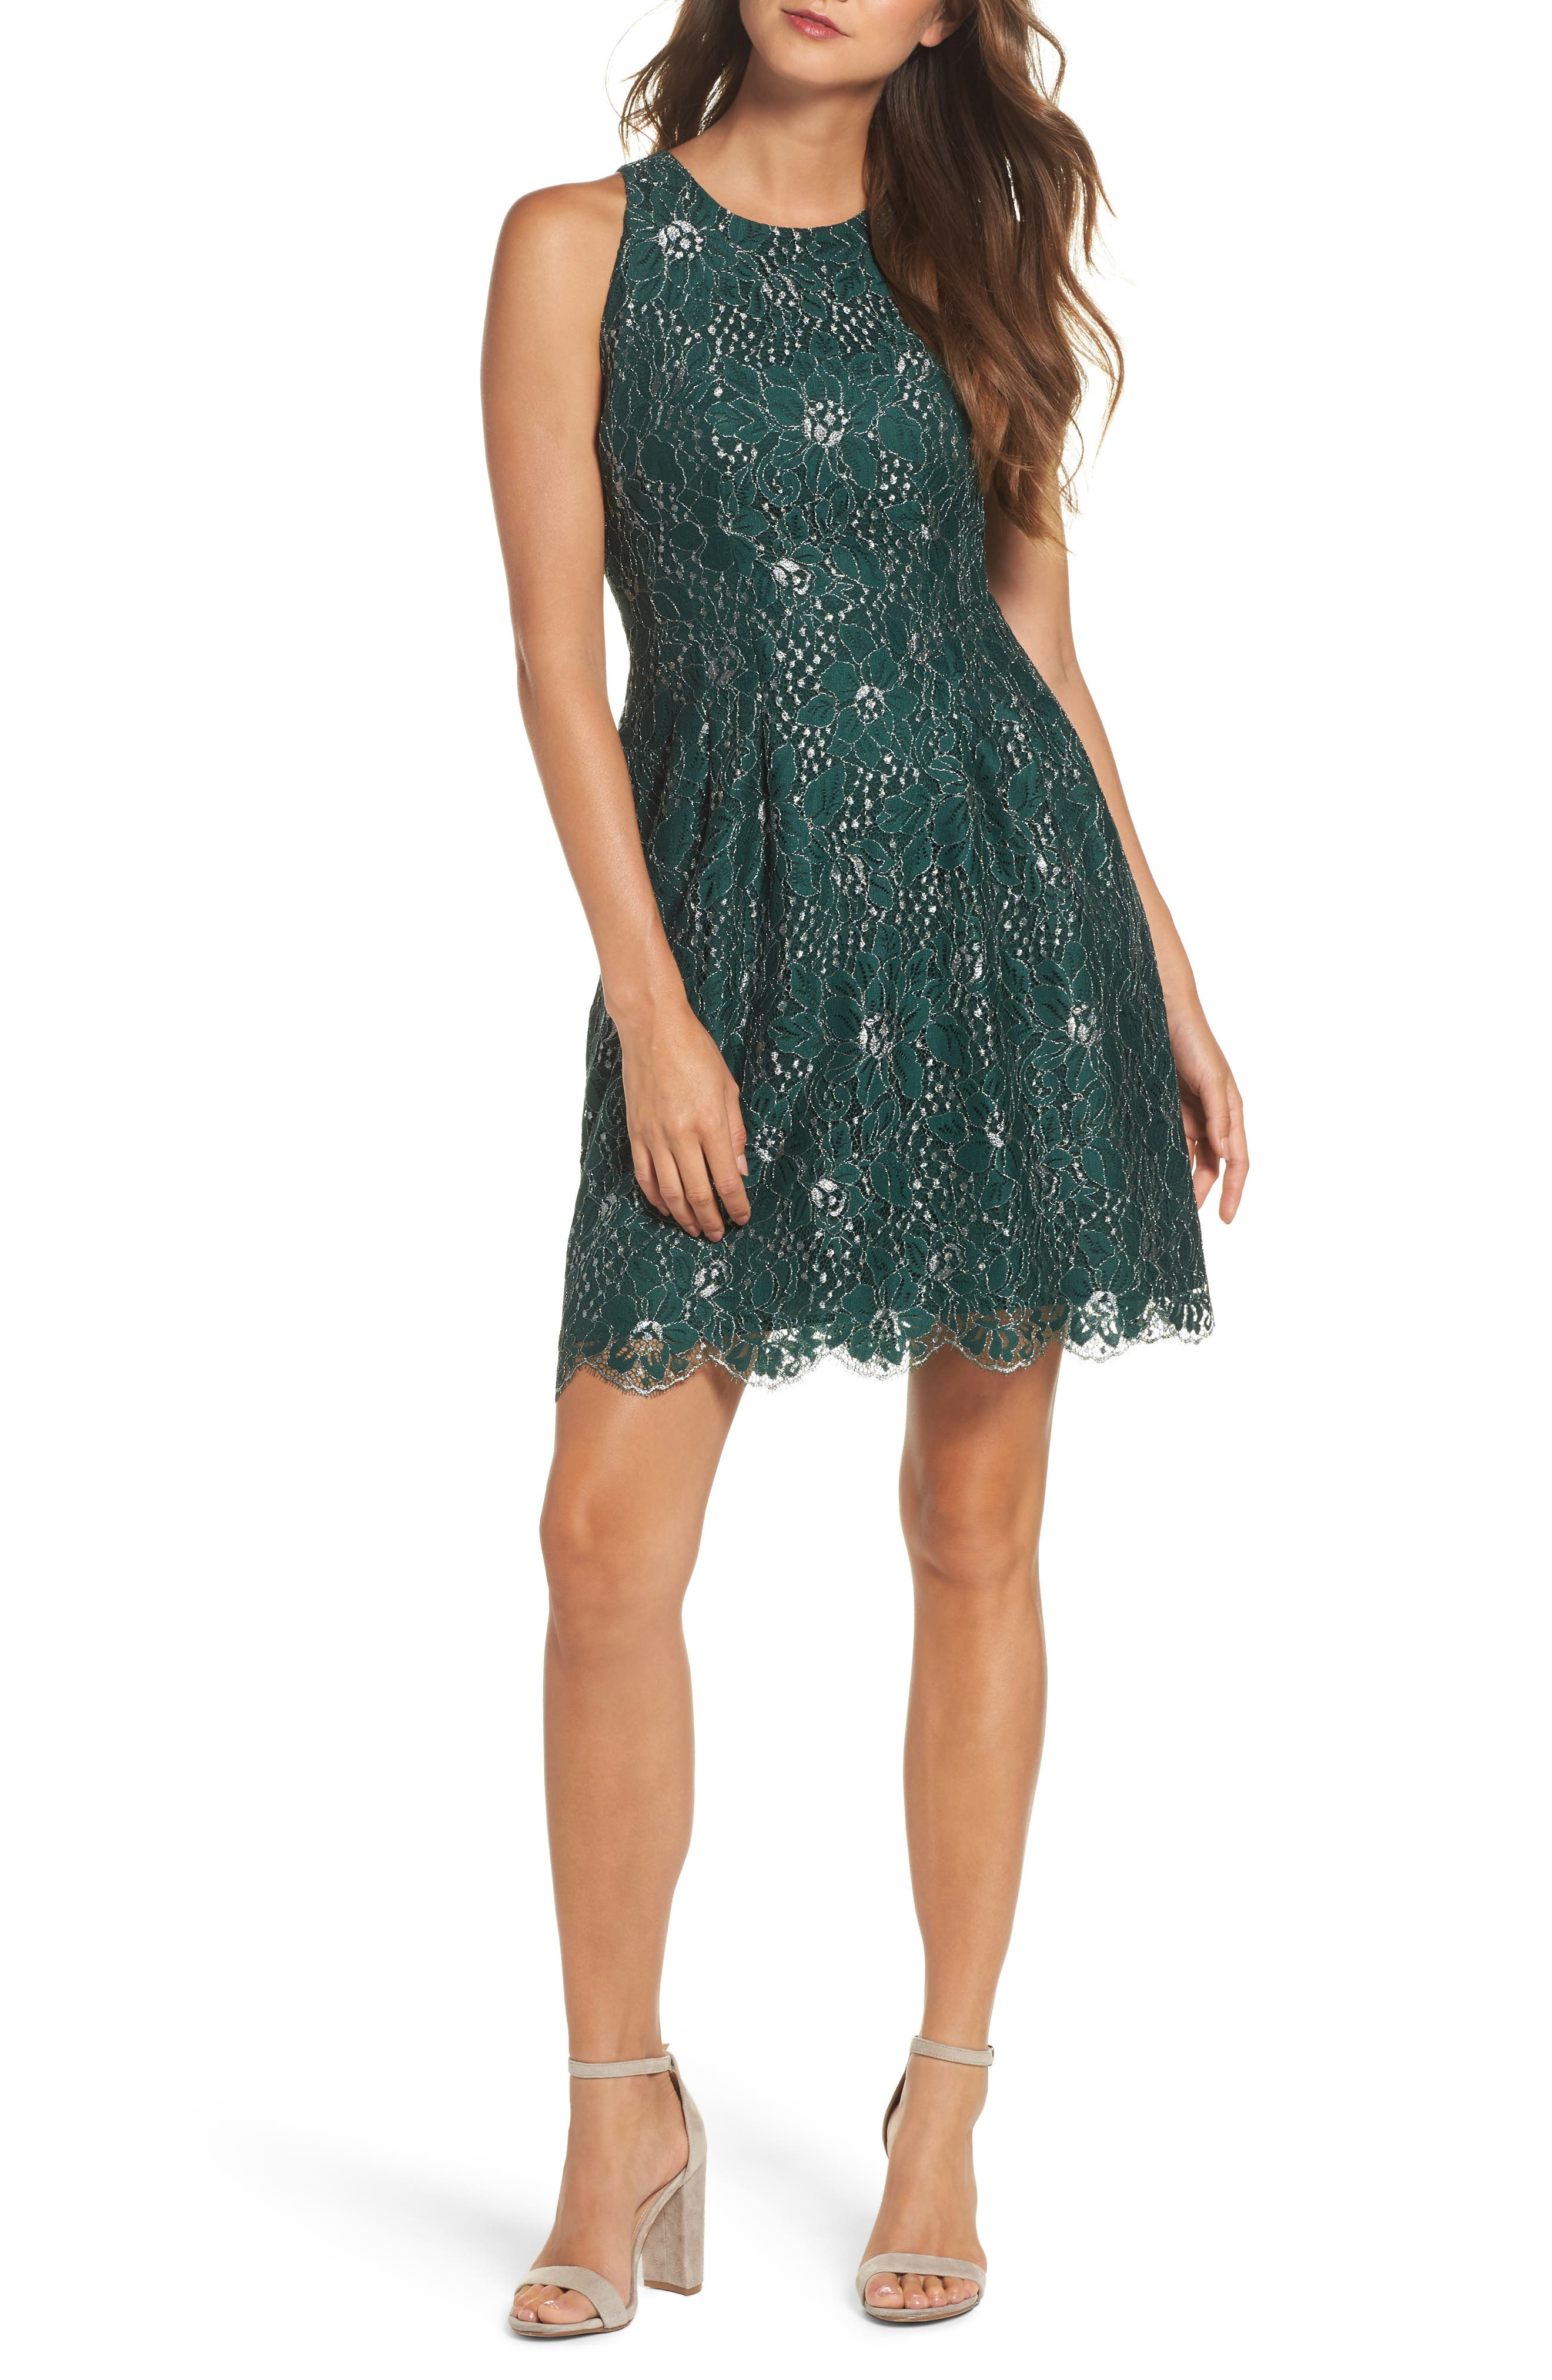 Alternate Image 1 Selected - Vince Camuto Metallic Lace Fit & Flare Dress